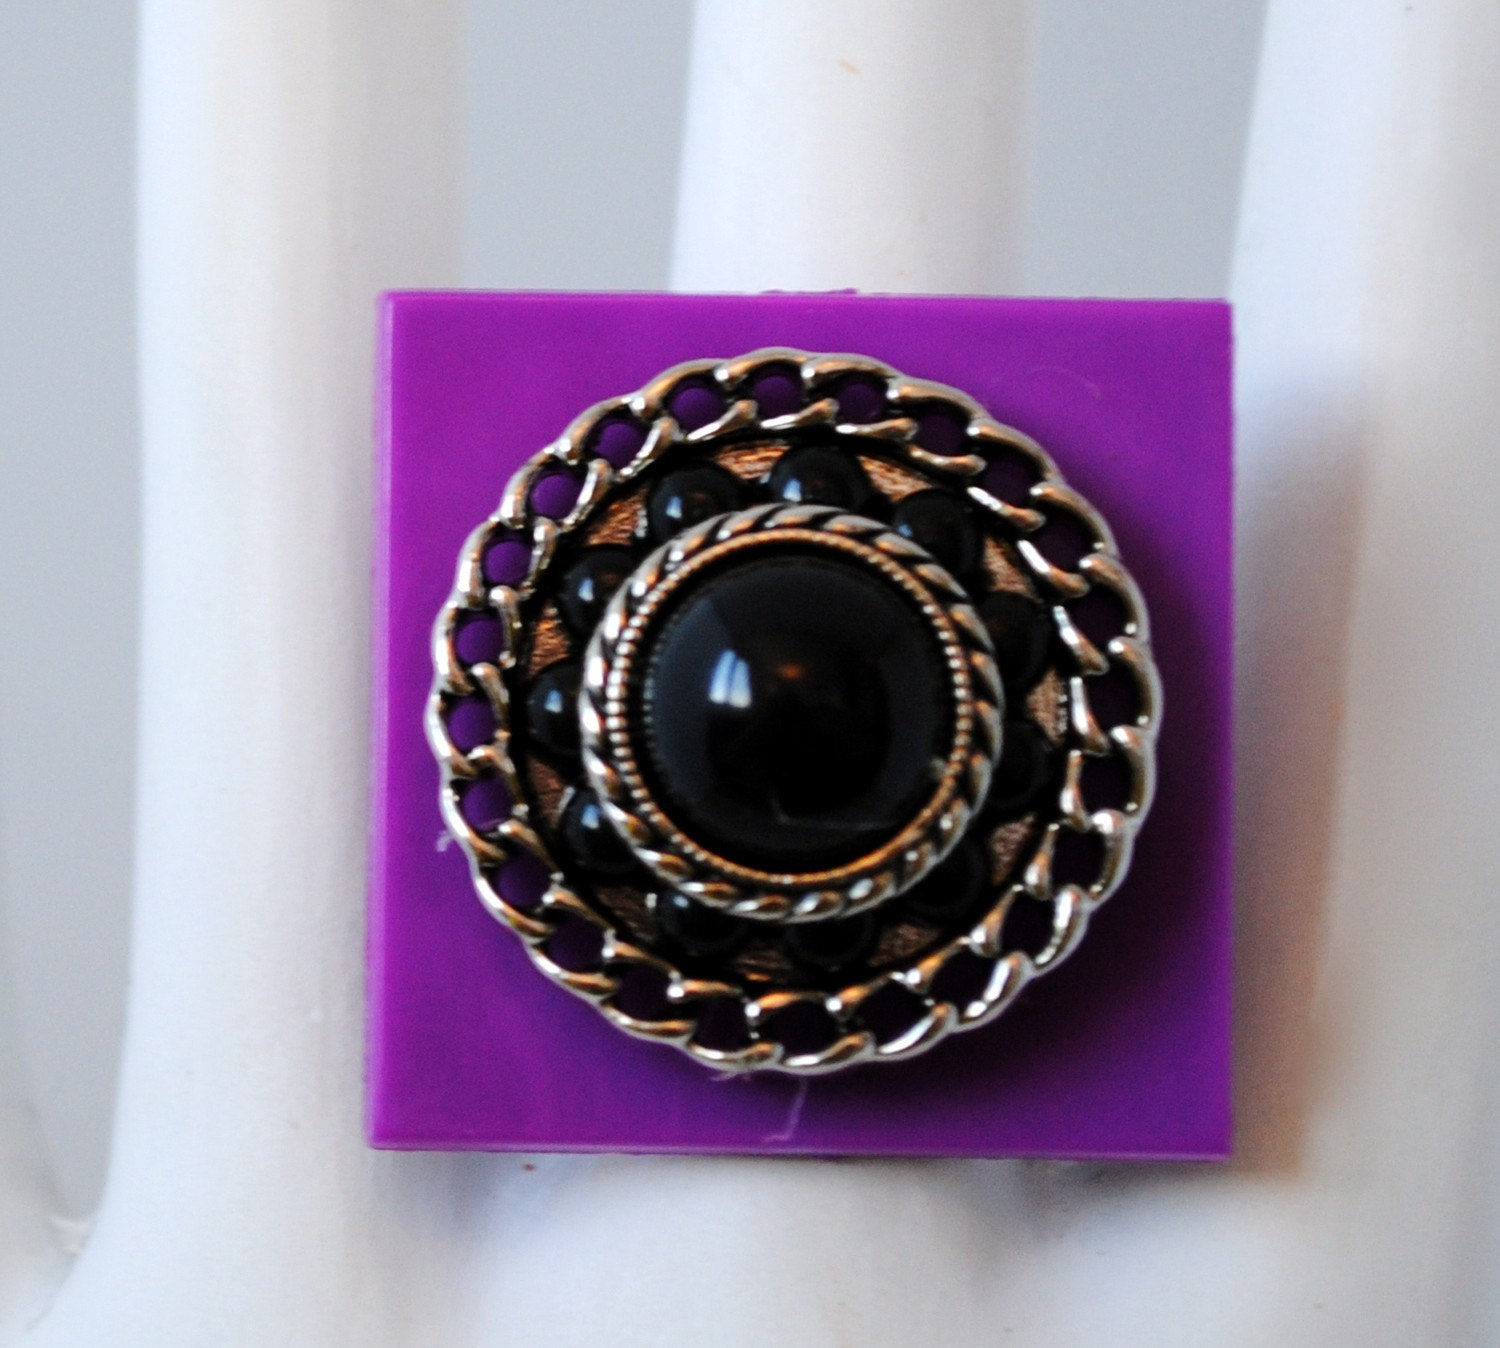 Purple button ring black silver and purple OOAK statement jewelry gift adjustable under 15 USD - victoriascharms